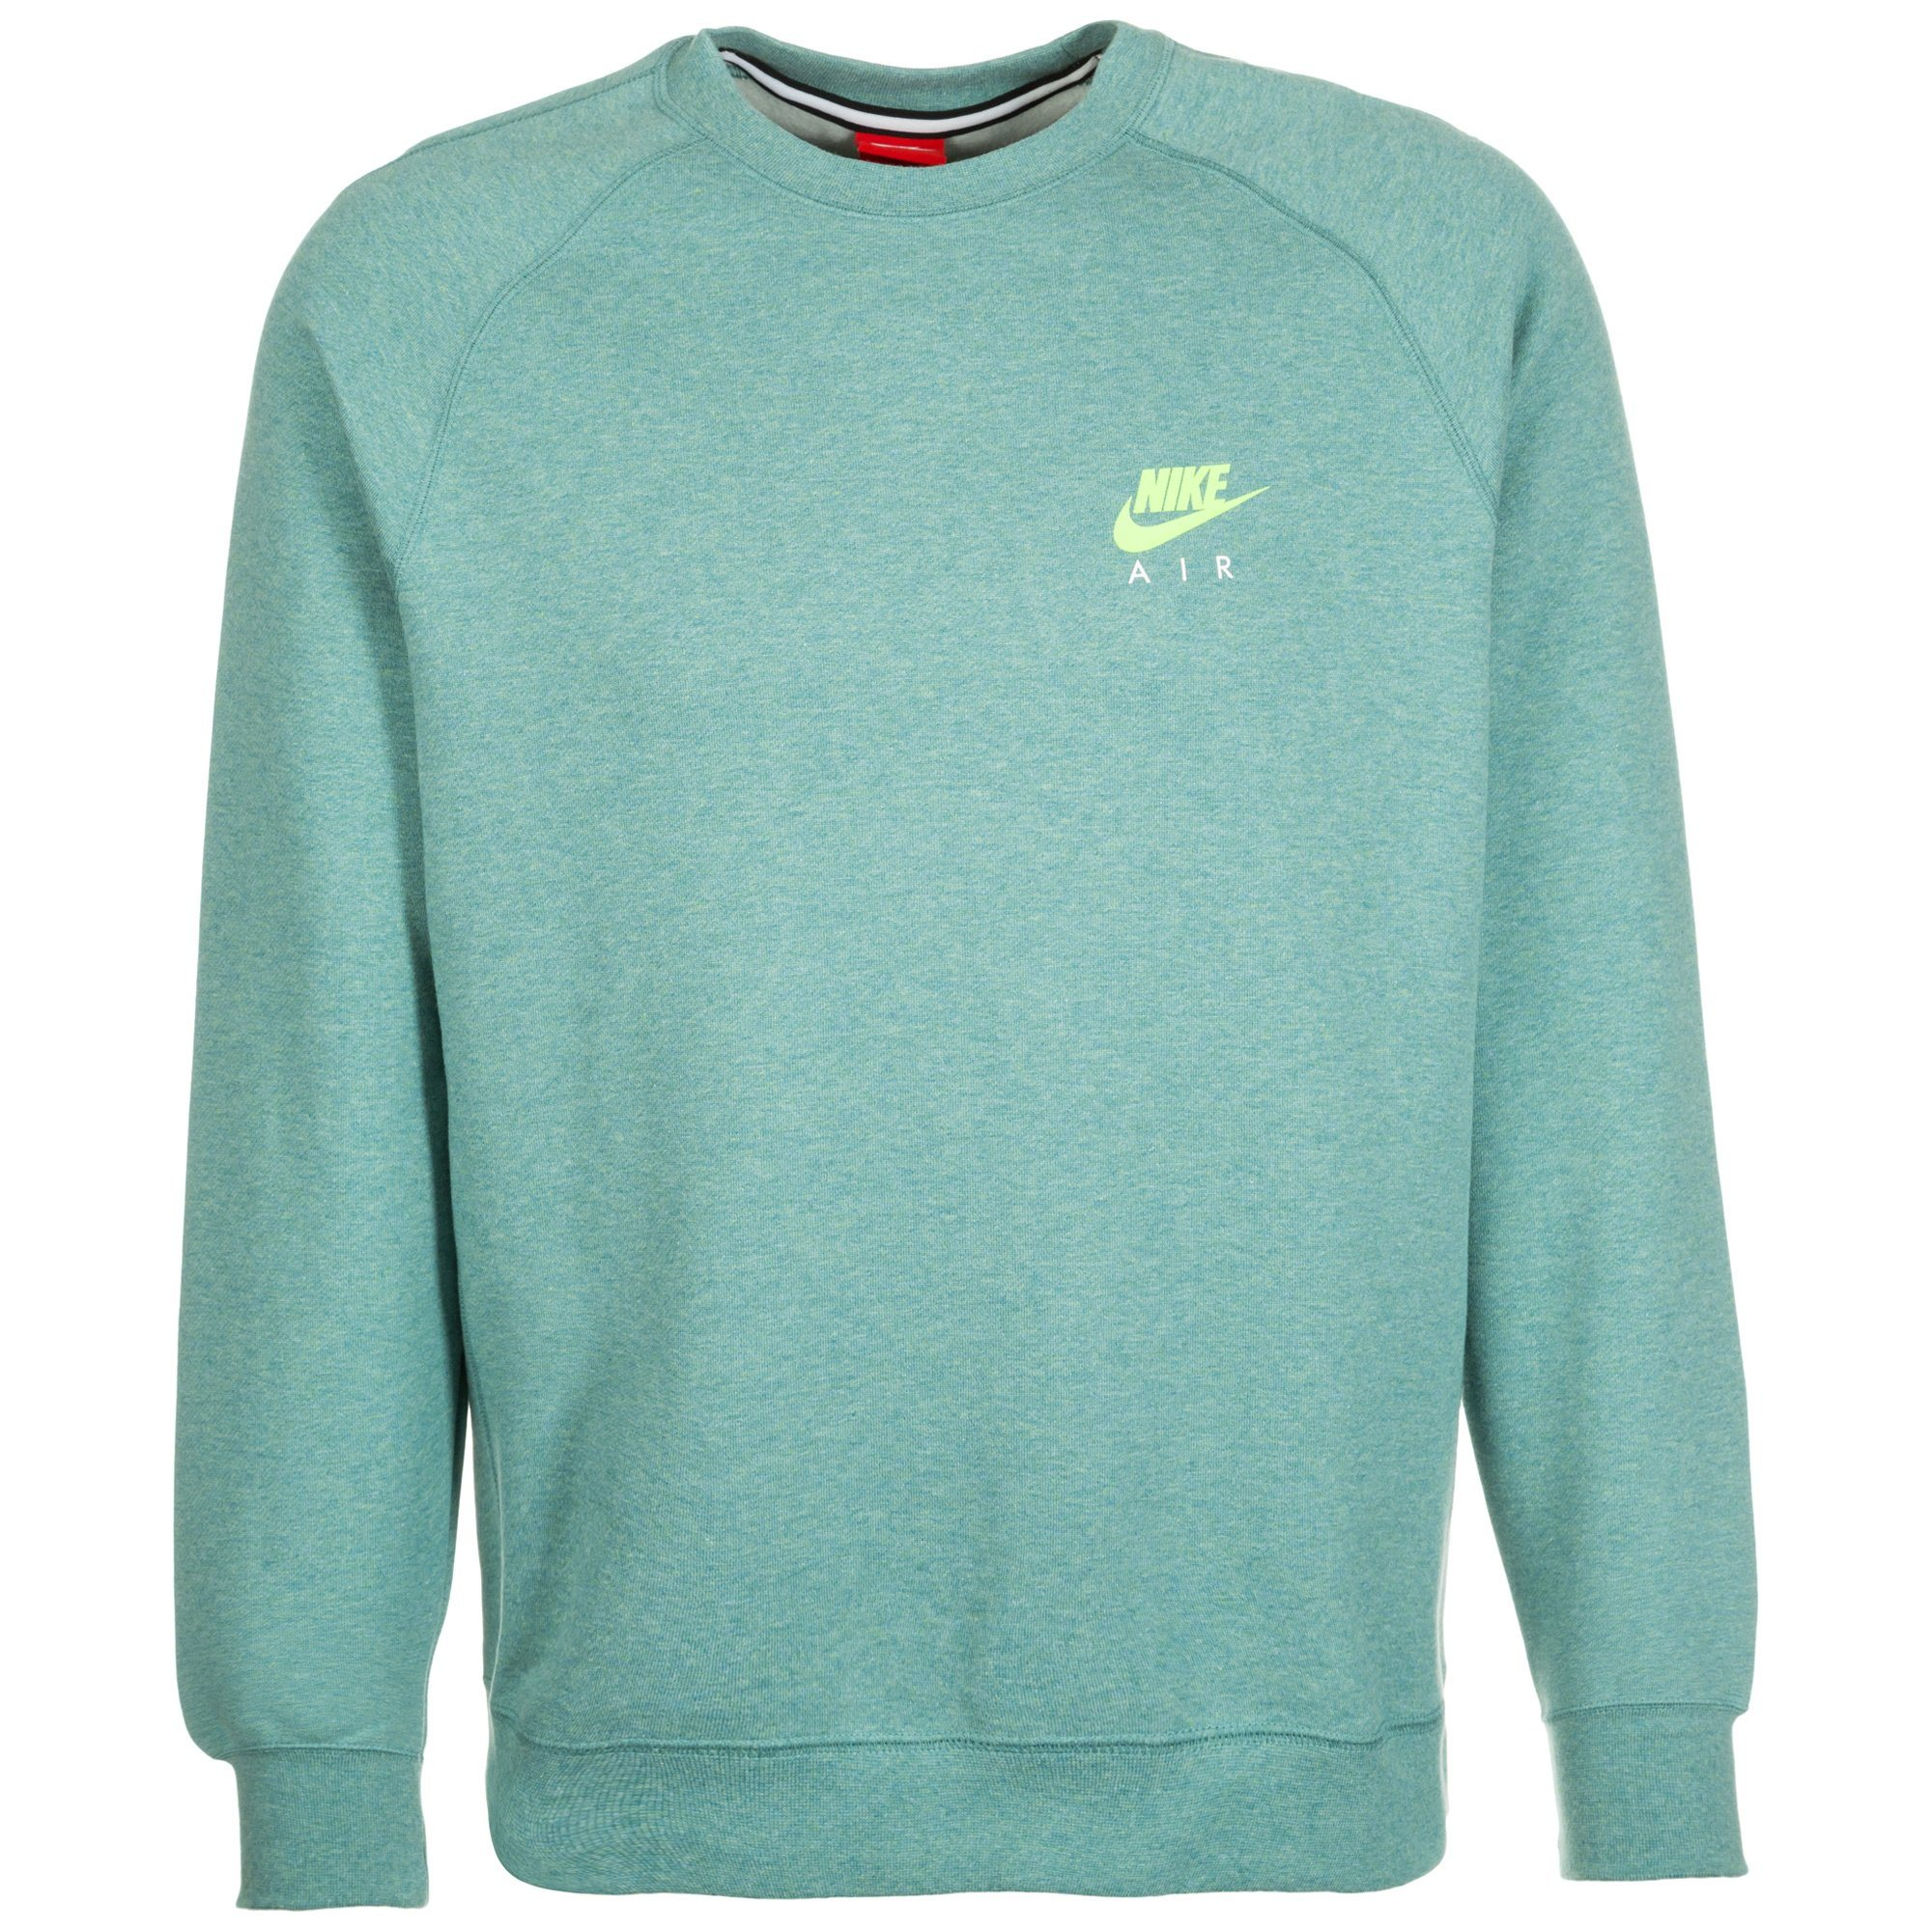 Nike Sportswear Air Fleece Crew Sweatshirt Herren